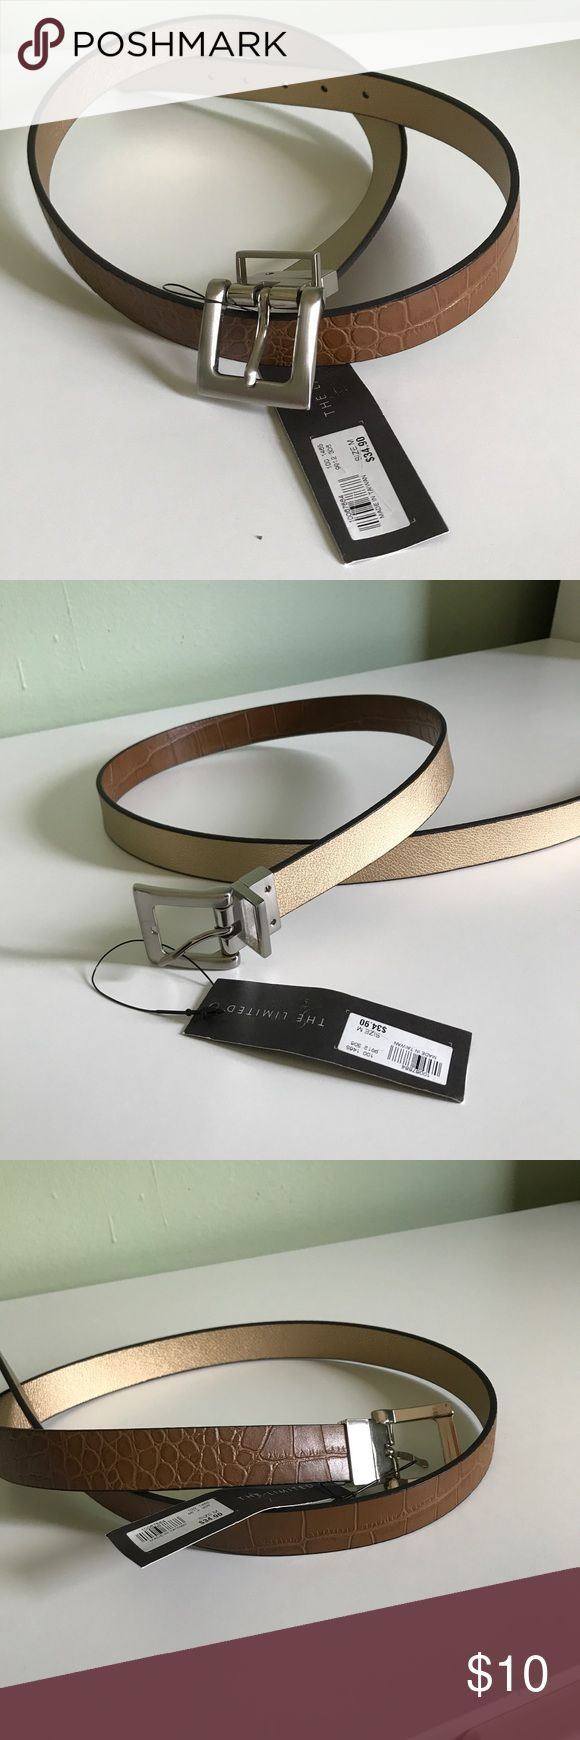 "💕NWT The Limited Gold and Brown Reversible Belt New reversible brown croco and pretty gold metallic belt! Just twist the buckle and switch the look! Leather, Silver buckle, size M, 41"" long. The Limited Accessories Belts"